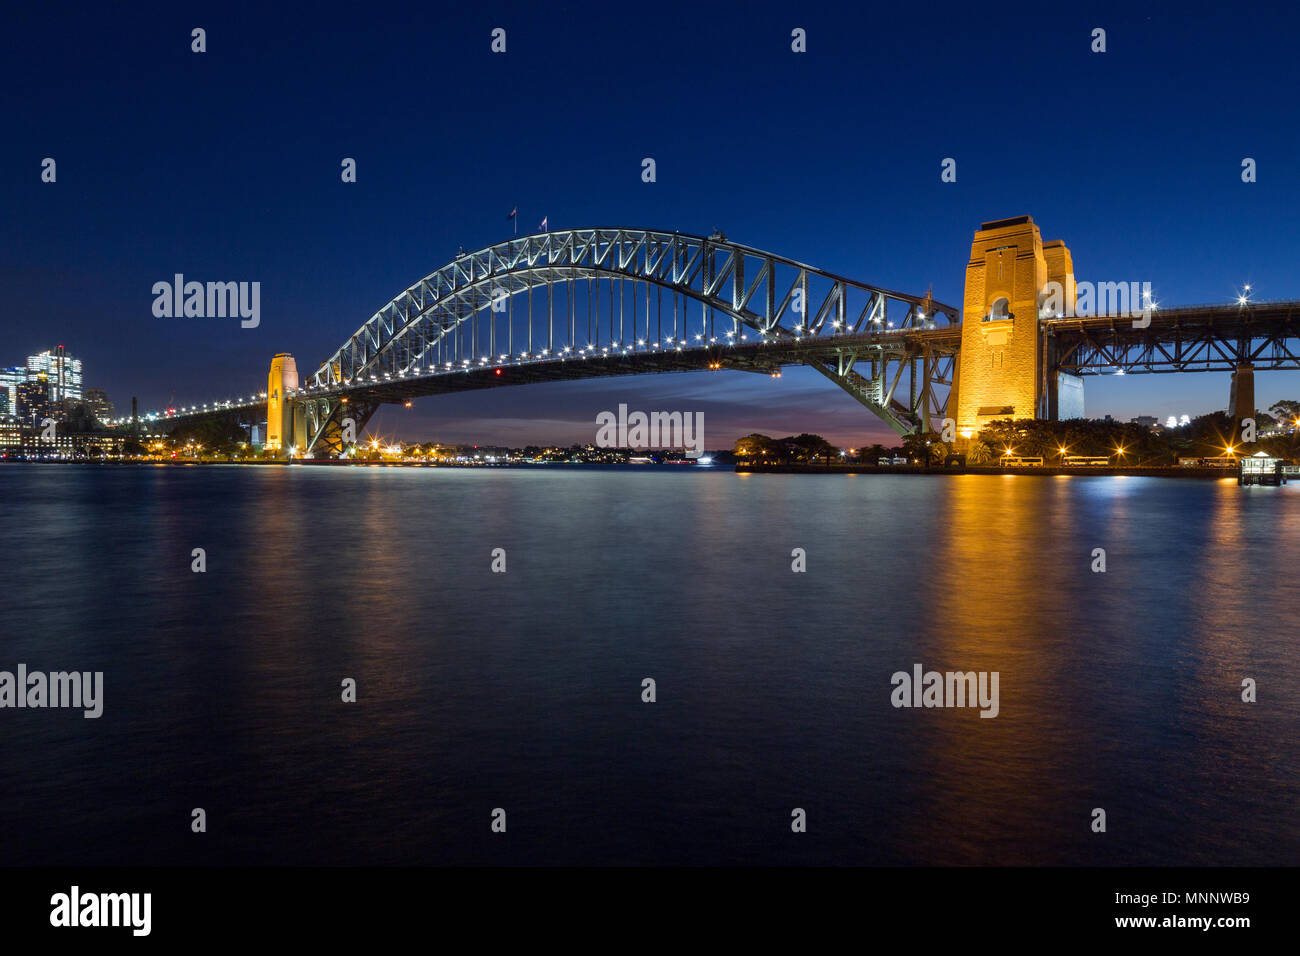 Sydney Harbour Bridge on Sydney Harbour in Australia. - Stock Image